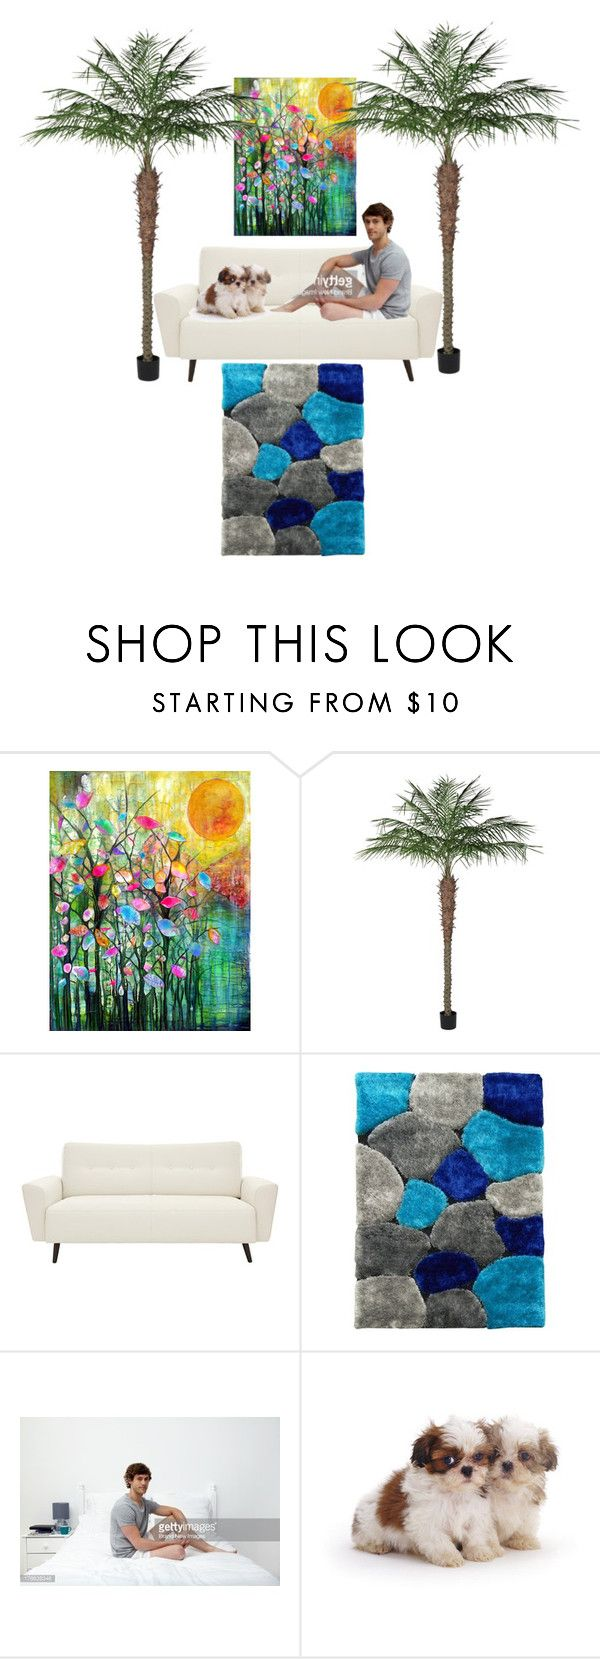 """Untitled #139"" by love-swimmer ❤ liked on Polyvore featuring interior, interiors, interior design, home, home decor, interior decorating and DonnieAnn"